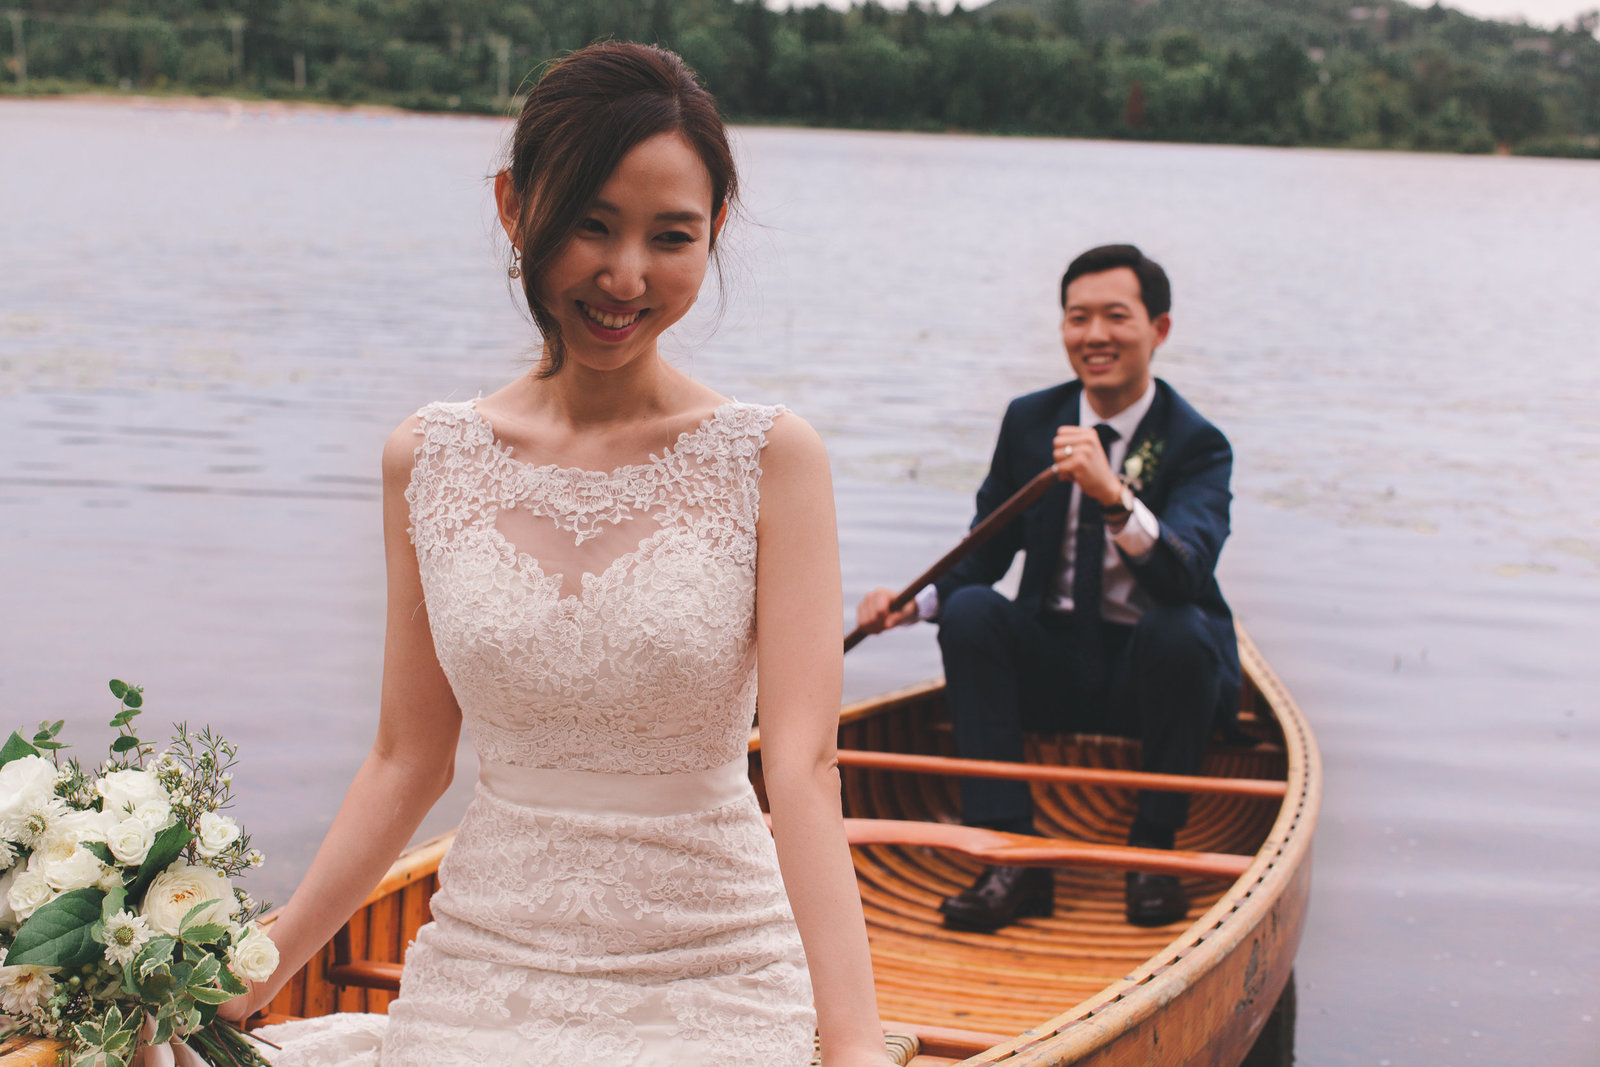 bride and groom in a canoe on the lake